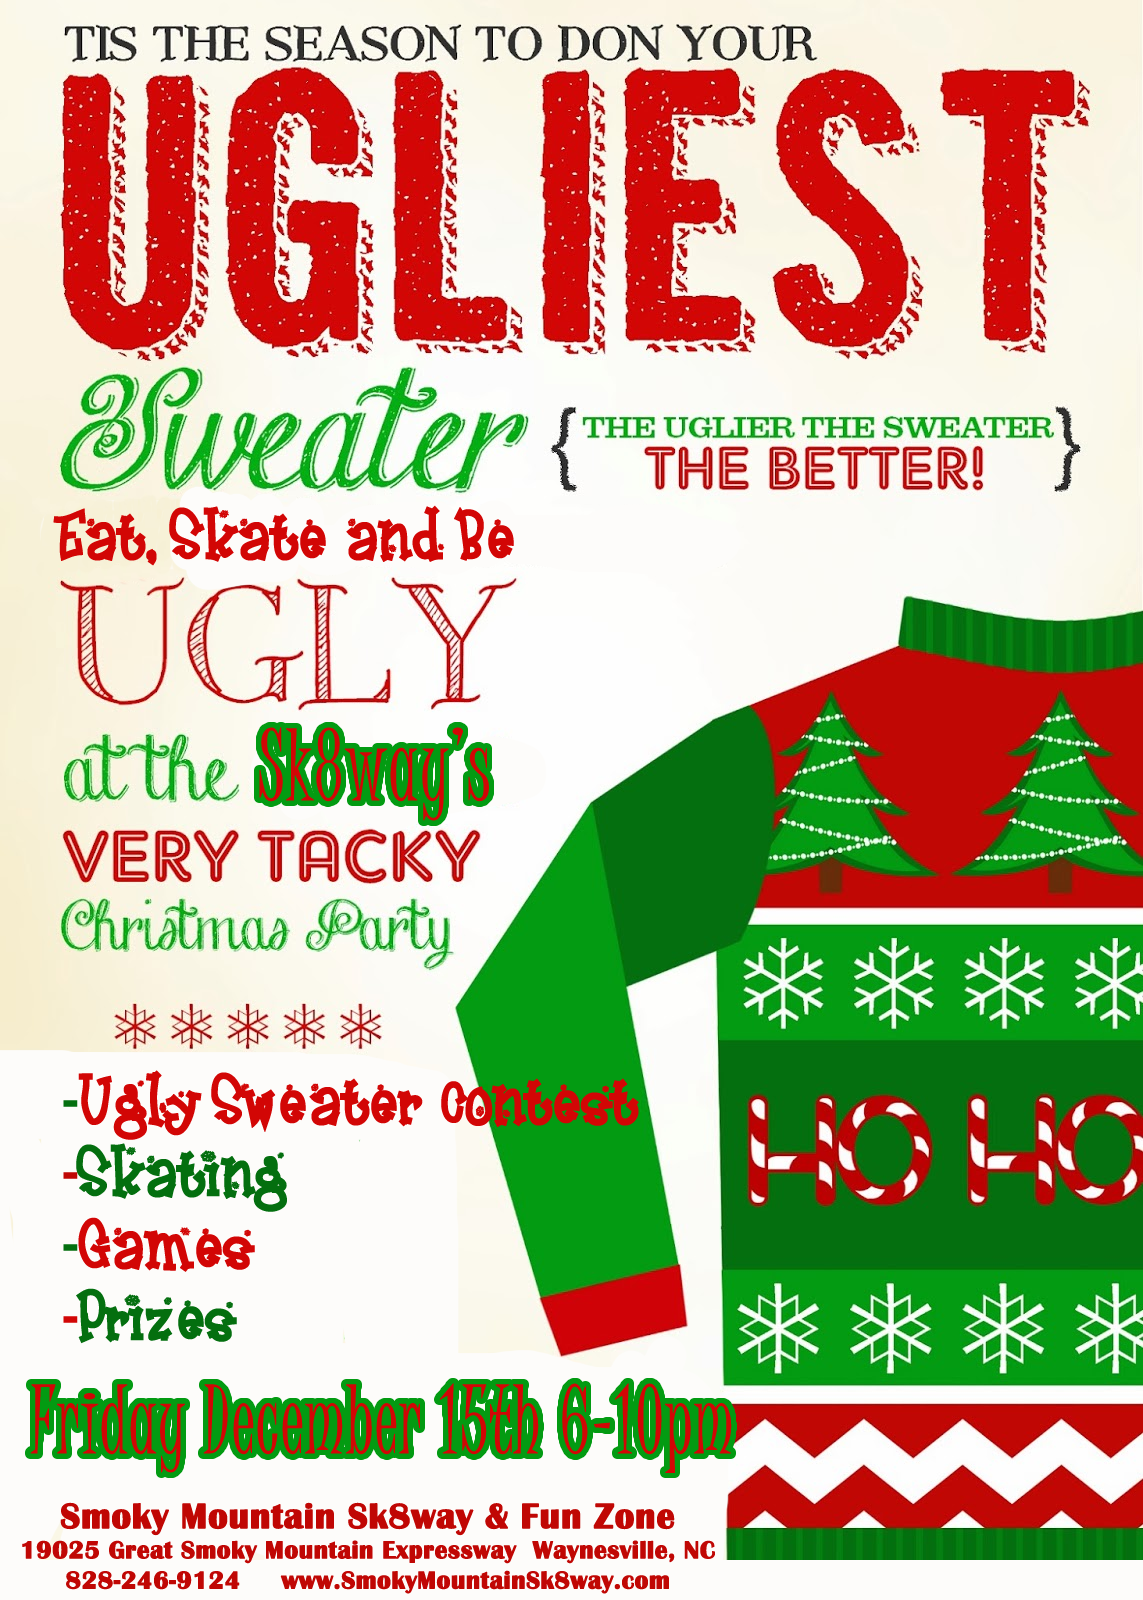 ugly christmas sweater flyer template, ugly christmas sweater contest flyer template free, ugly christmas sweater party flyer template, christmas event flyer template, ugly christmas sweater for men, extremely ugly christmas sweaters